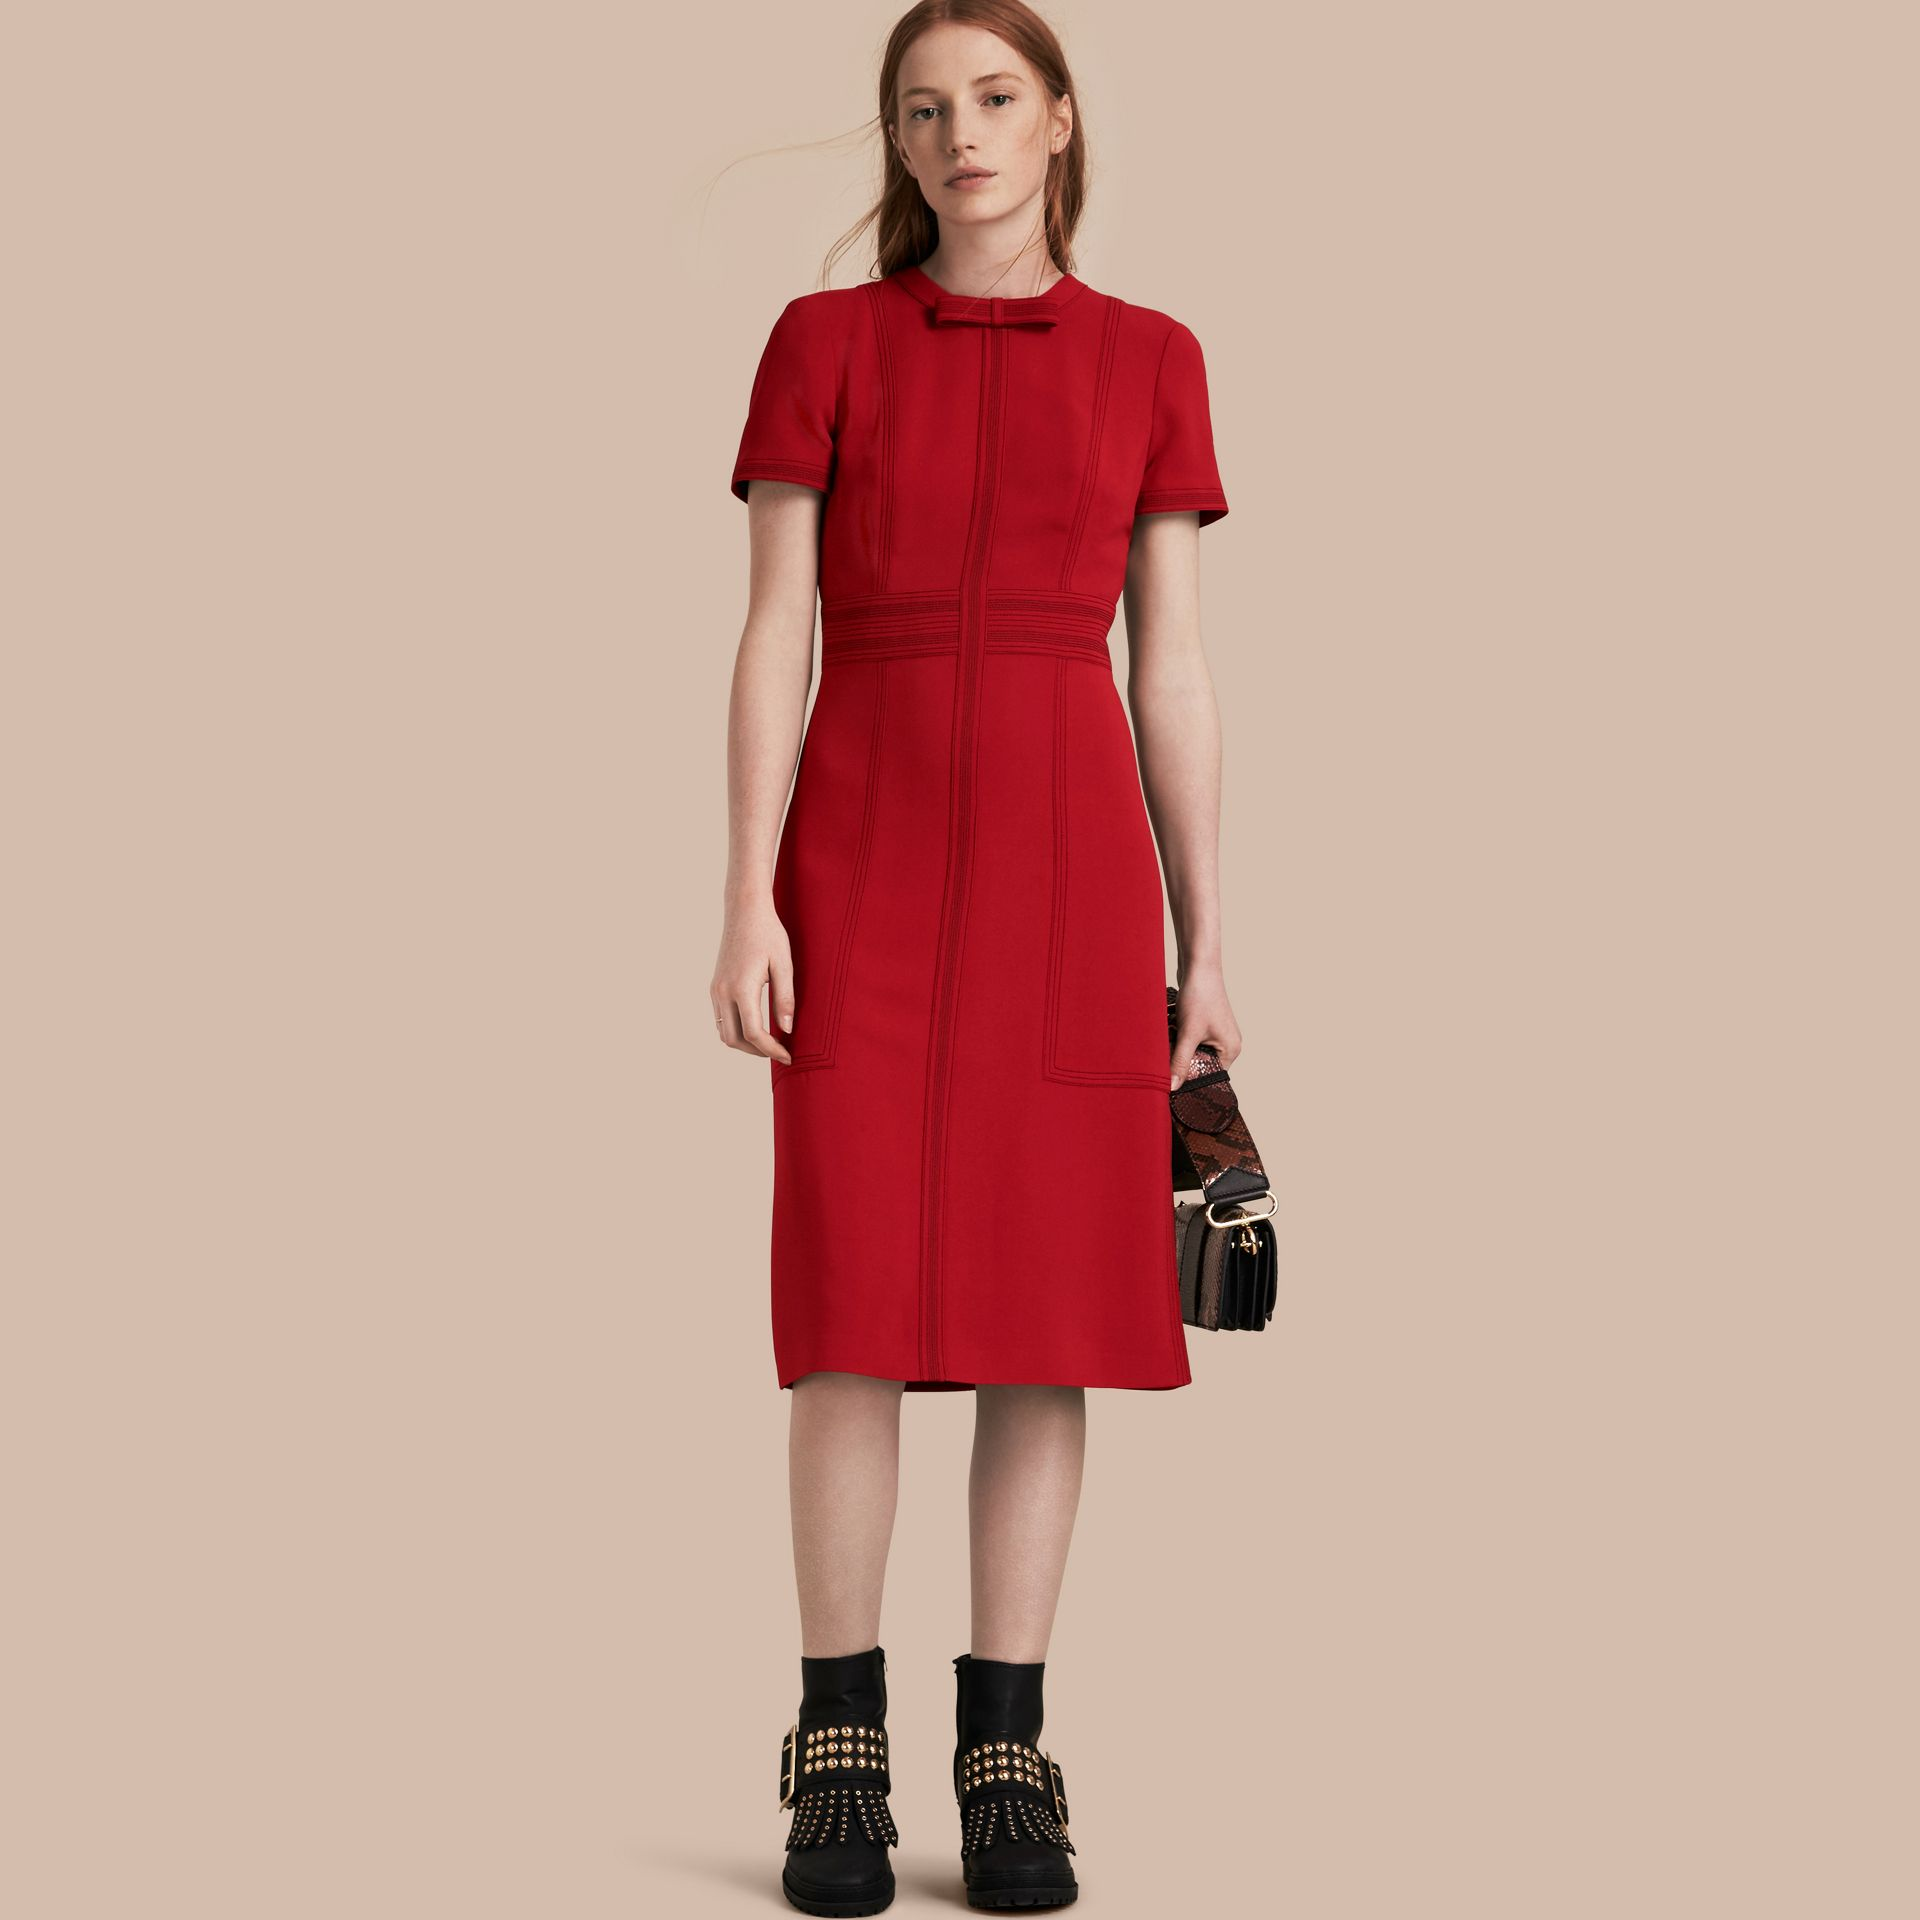 Parade red Short-sleeved Topstitch Detail Shift Dress - gallery image 1